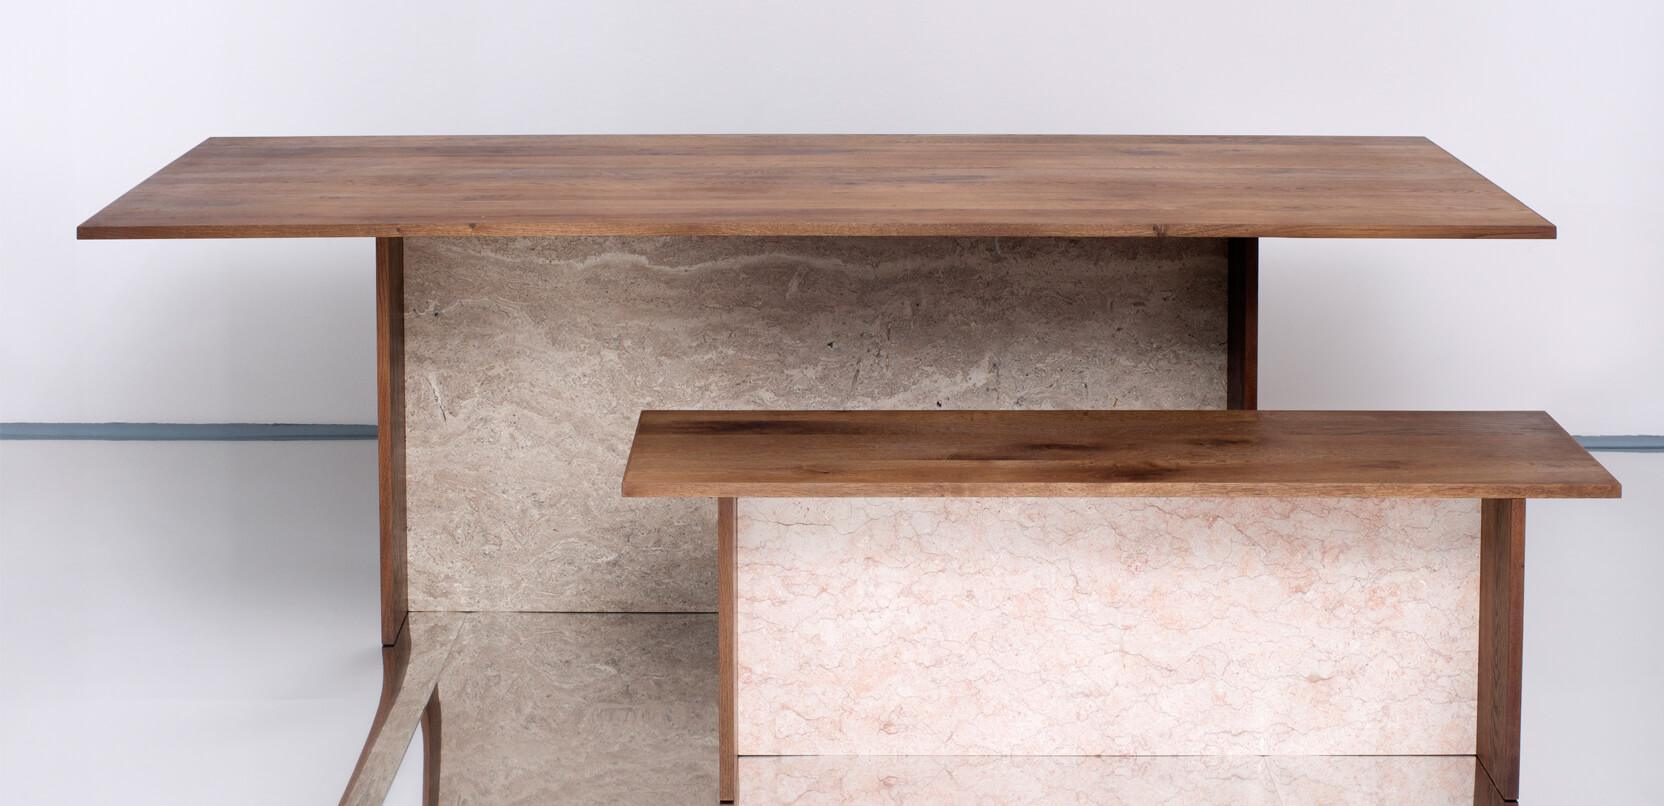 Bench and table made from antique recycled oak wood,  marble and travertine